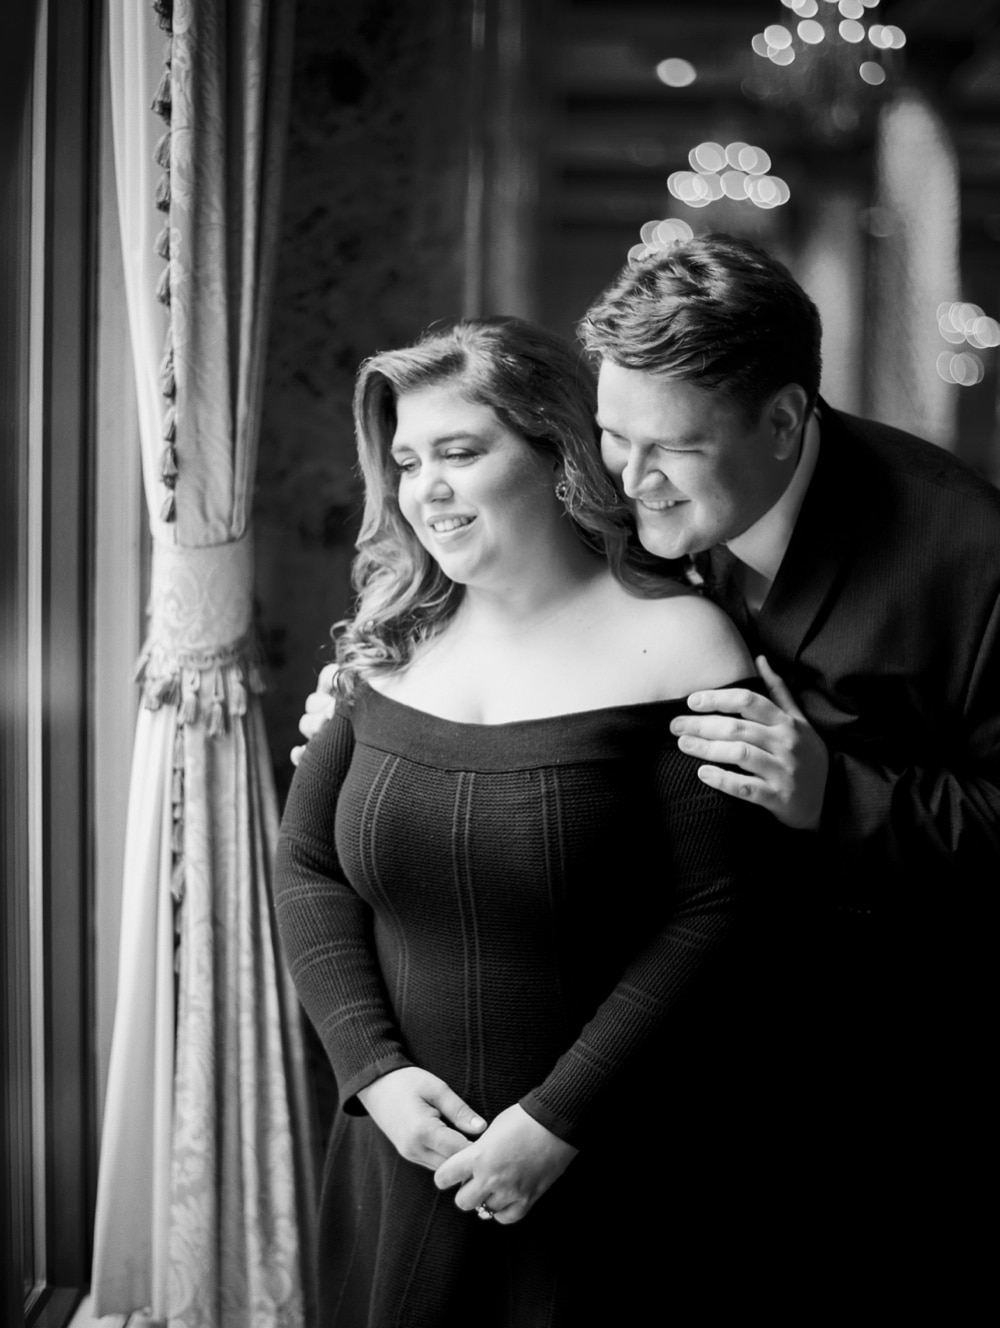 kristin-la-voie-photography-chicago-wedding-photographer-12